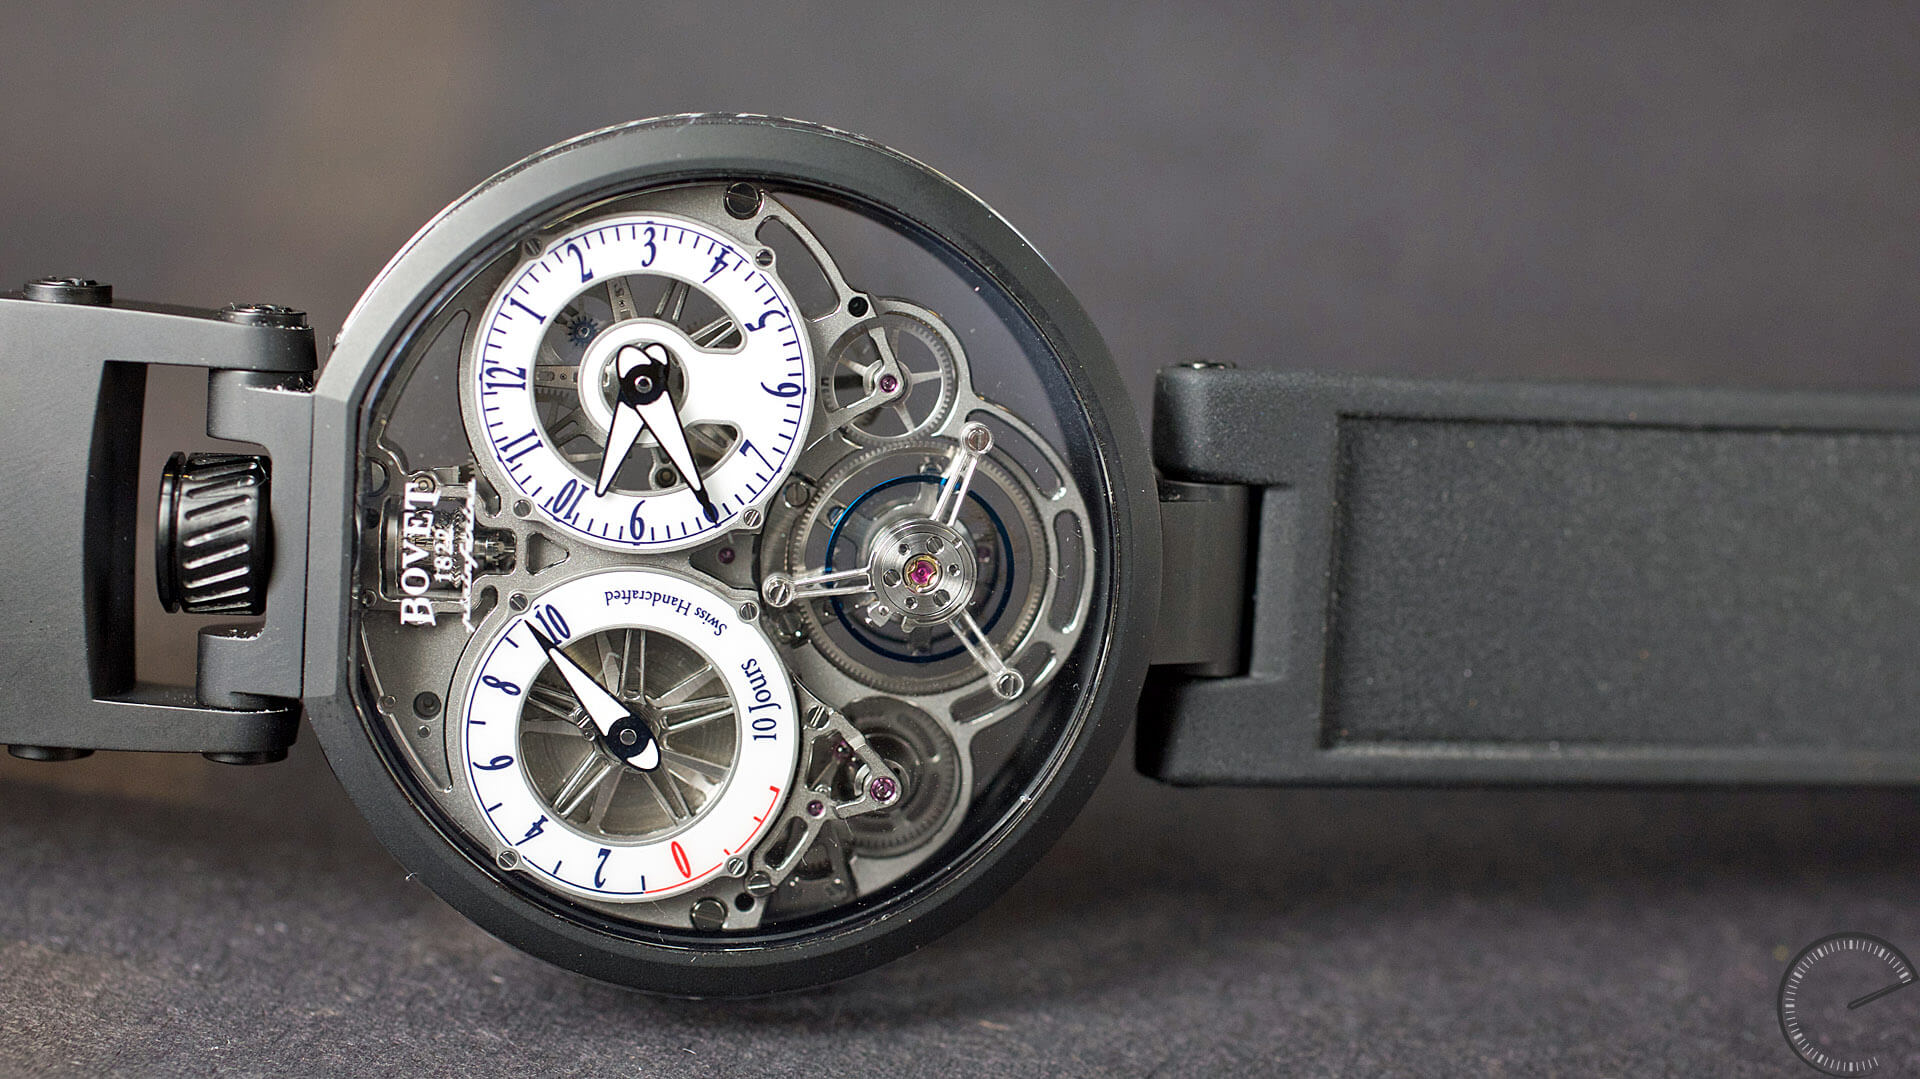 Bovet_Flying_Tourbillon_Ottanta_Sei_Sideview - ESCAPEMENT magazine - hands-on reviews by Angus Davies